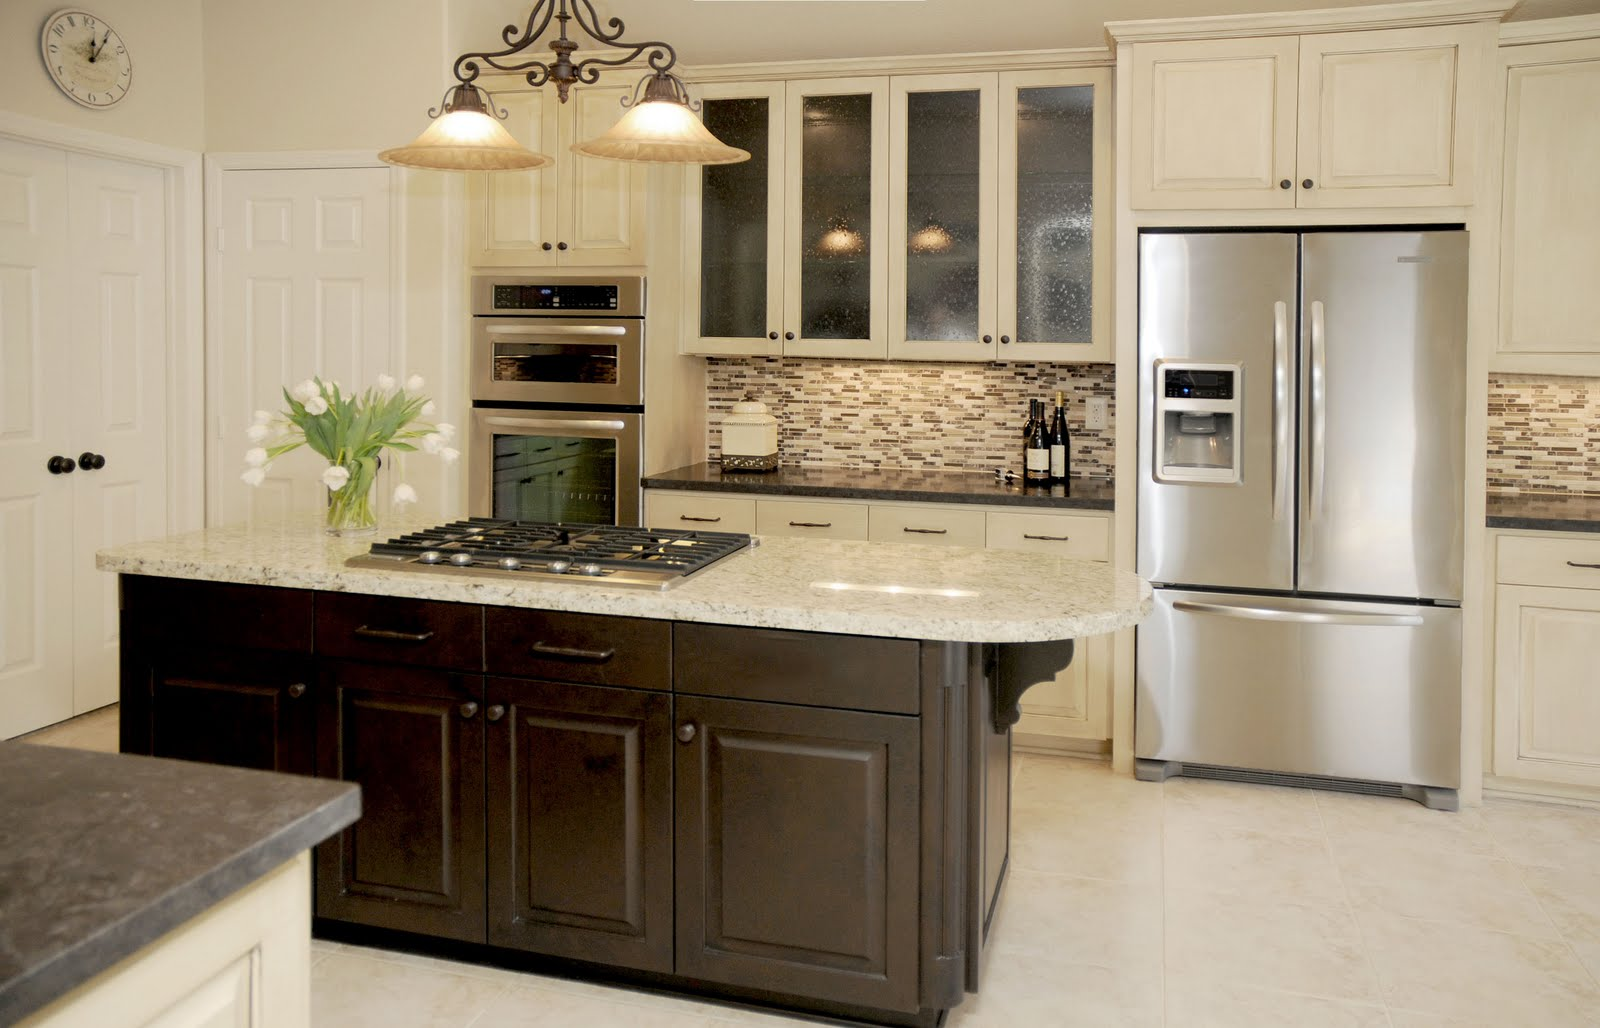 Design in the woods kitchen remodel before and after for Kitchen cabinet remodel